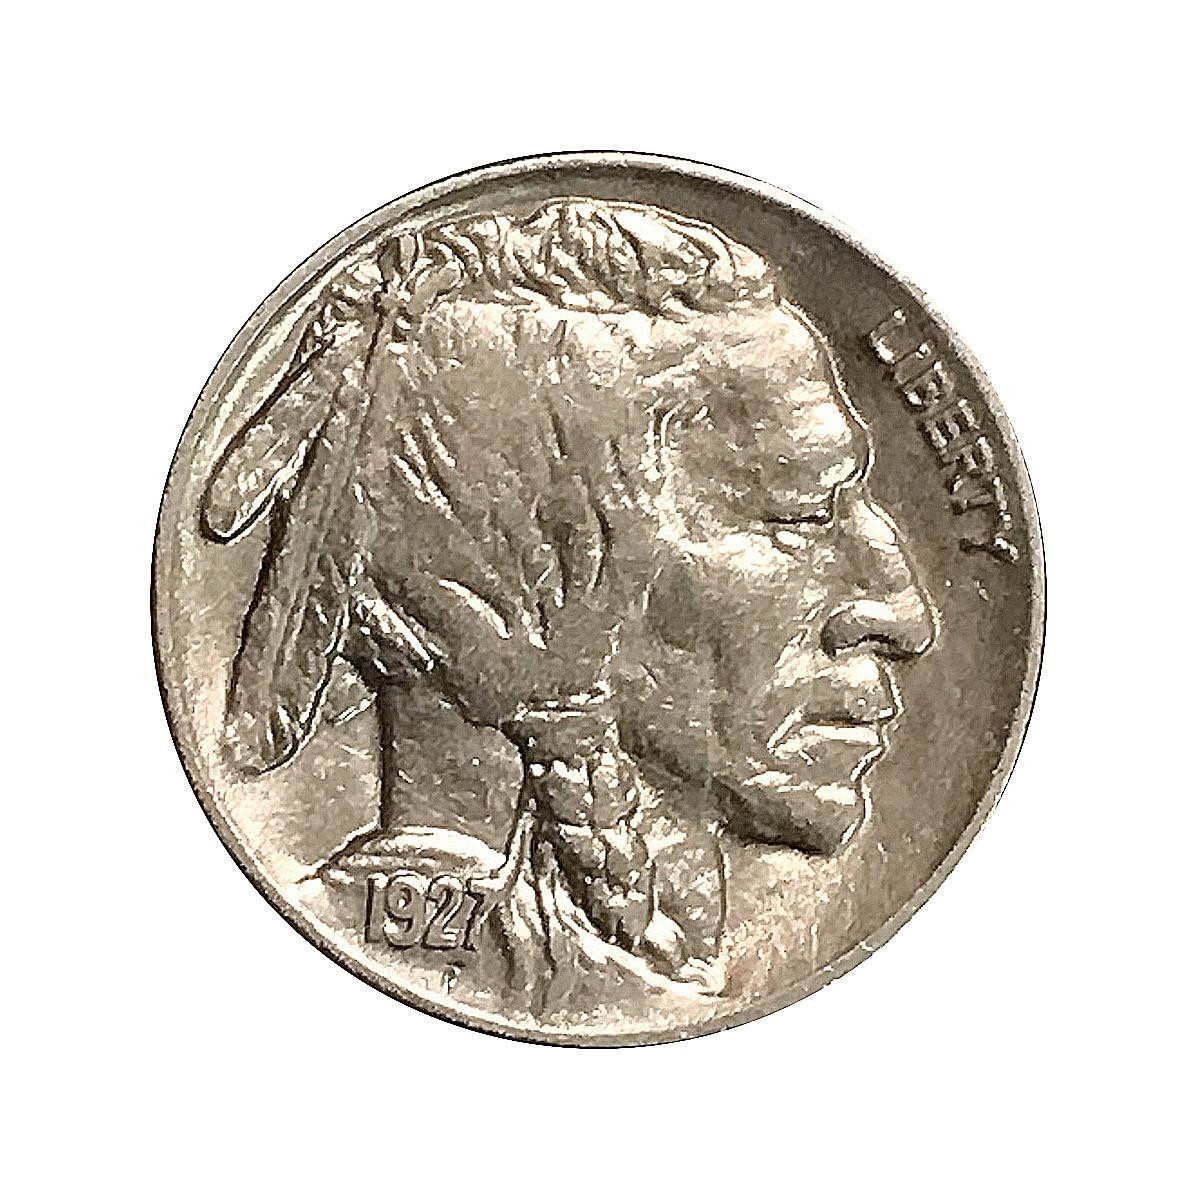 New 1927 P Buffalo Nickel Choice Bu Ms Unc Better Buffalo Nickels for Sale Of Wonderful 48 Photos Buffalo Nickels for Sale